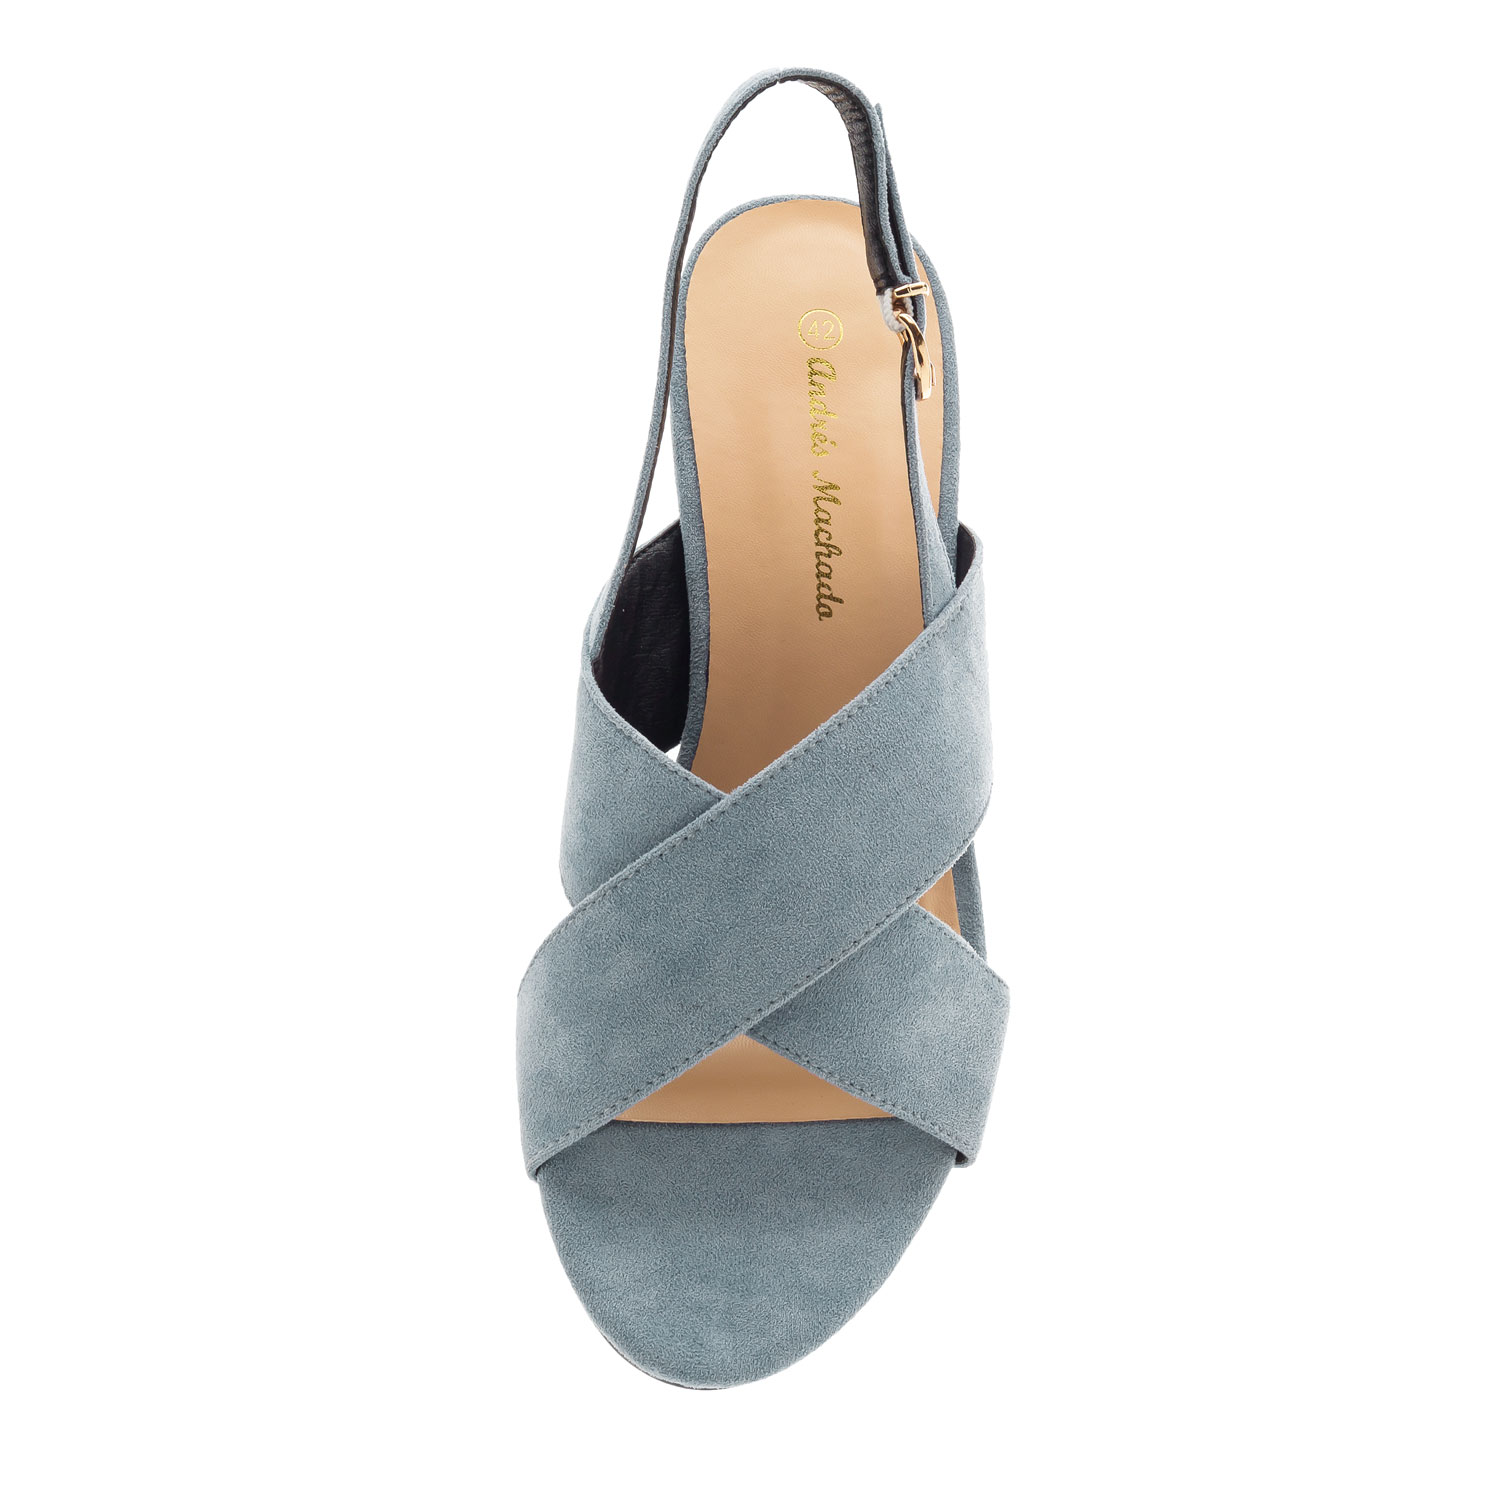 Slingback Cross-band Sandals in Blue Suede